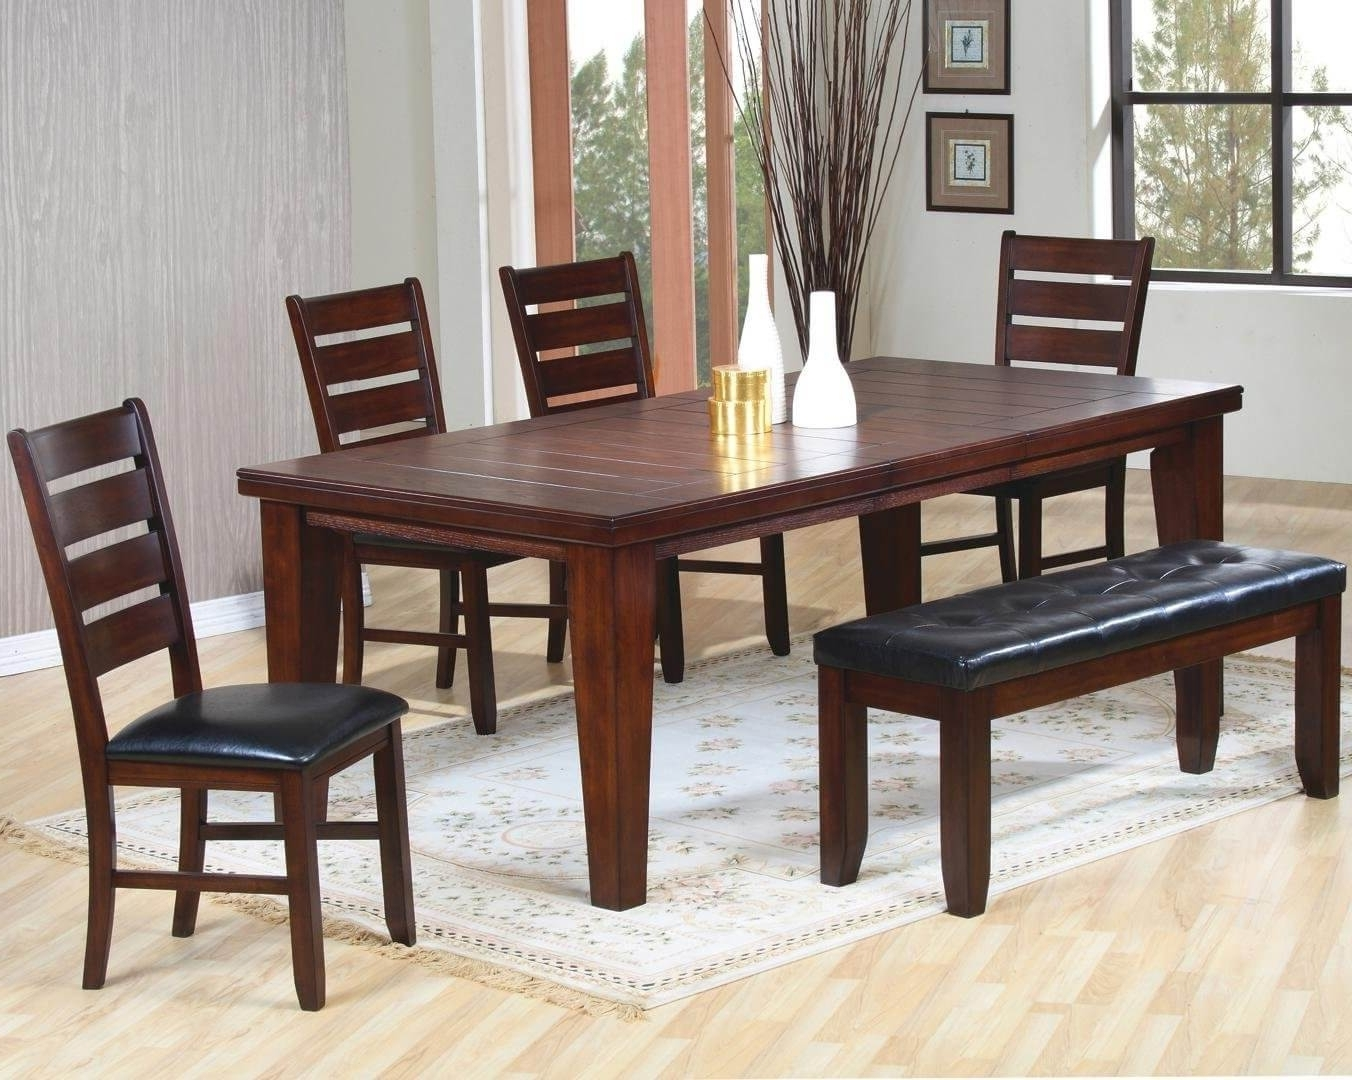 Well Known 26 Dining Room Sets (Big And Small) With Bench Seating (2018) With Regard To Dining Tables And Six Chairs (View 23 of 25)